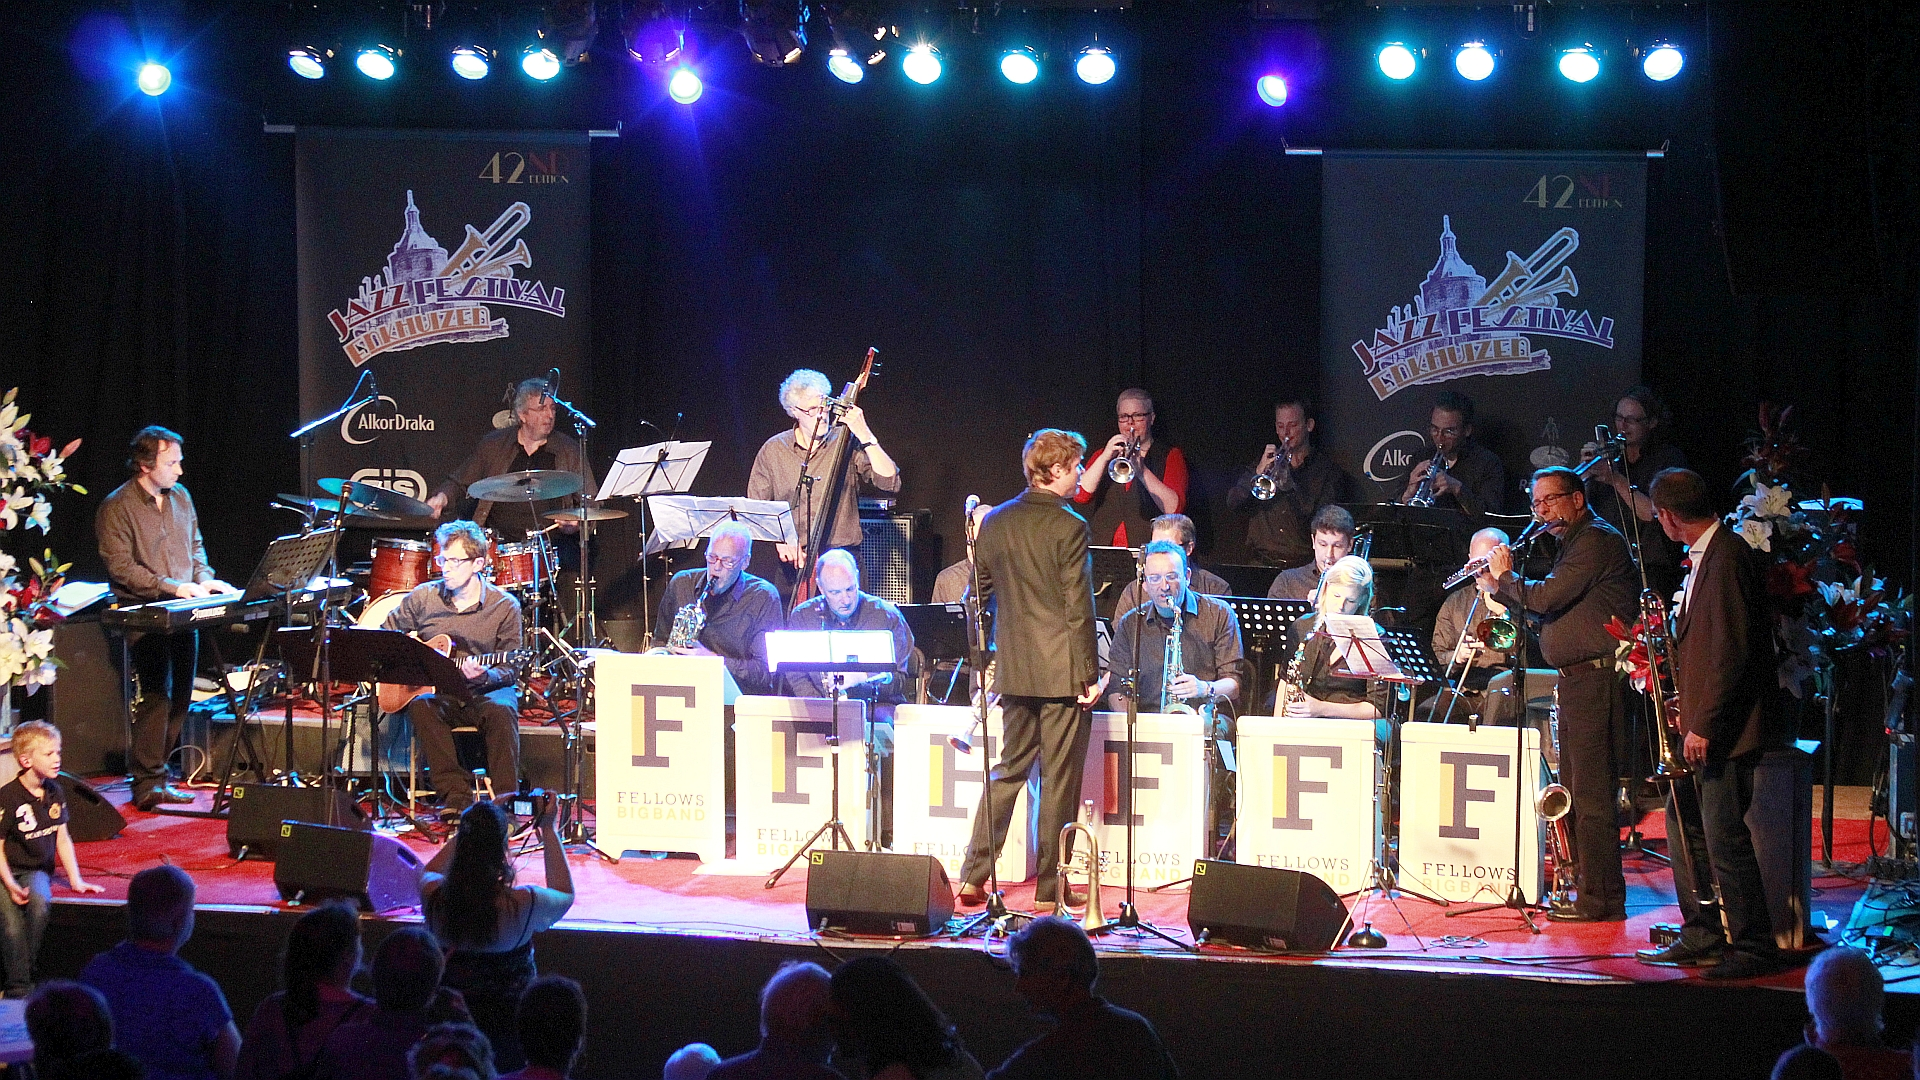 18 Fellows Big Band